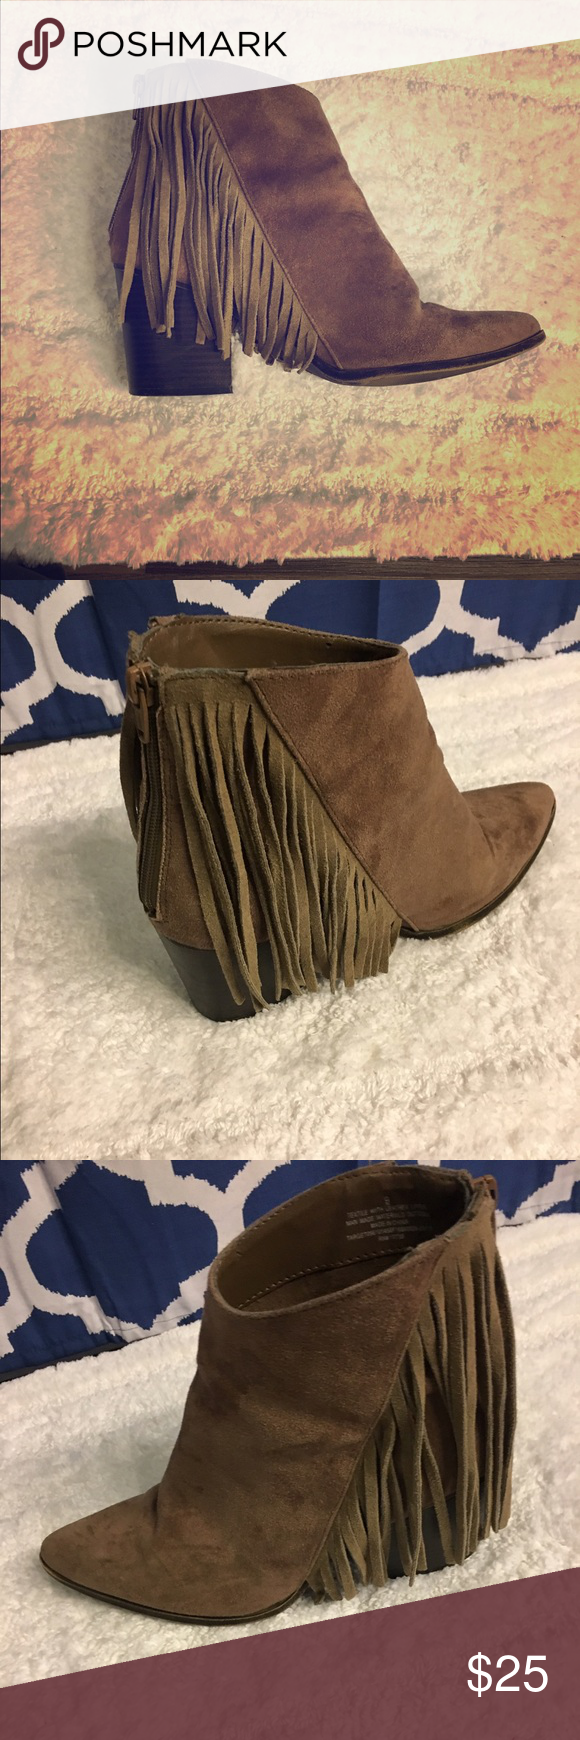 Fringe booties Fun Fringe booties some wear and tear Mossimo Supply Co Shoes Ankle Boots & Booties